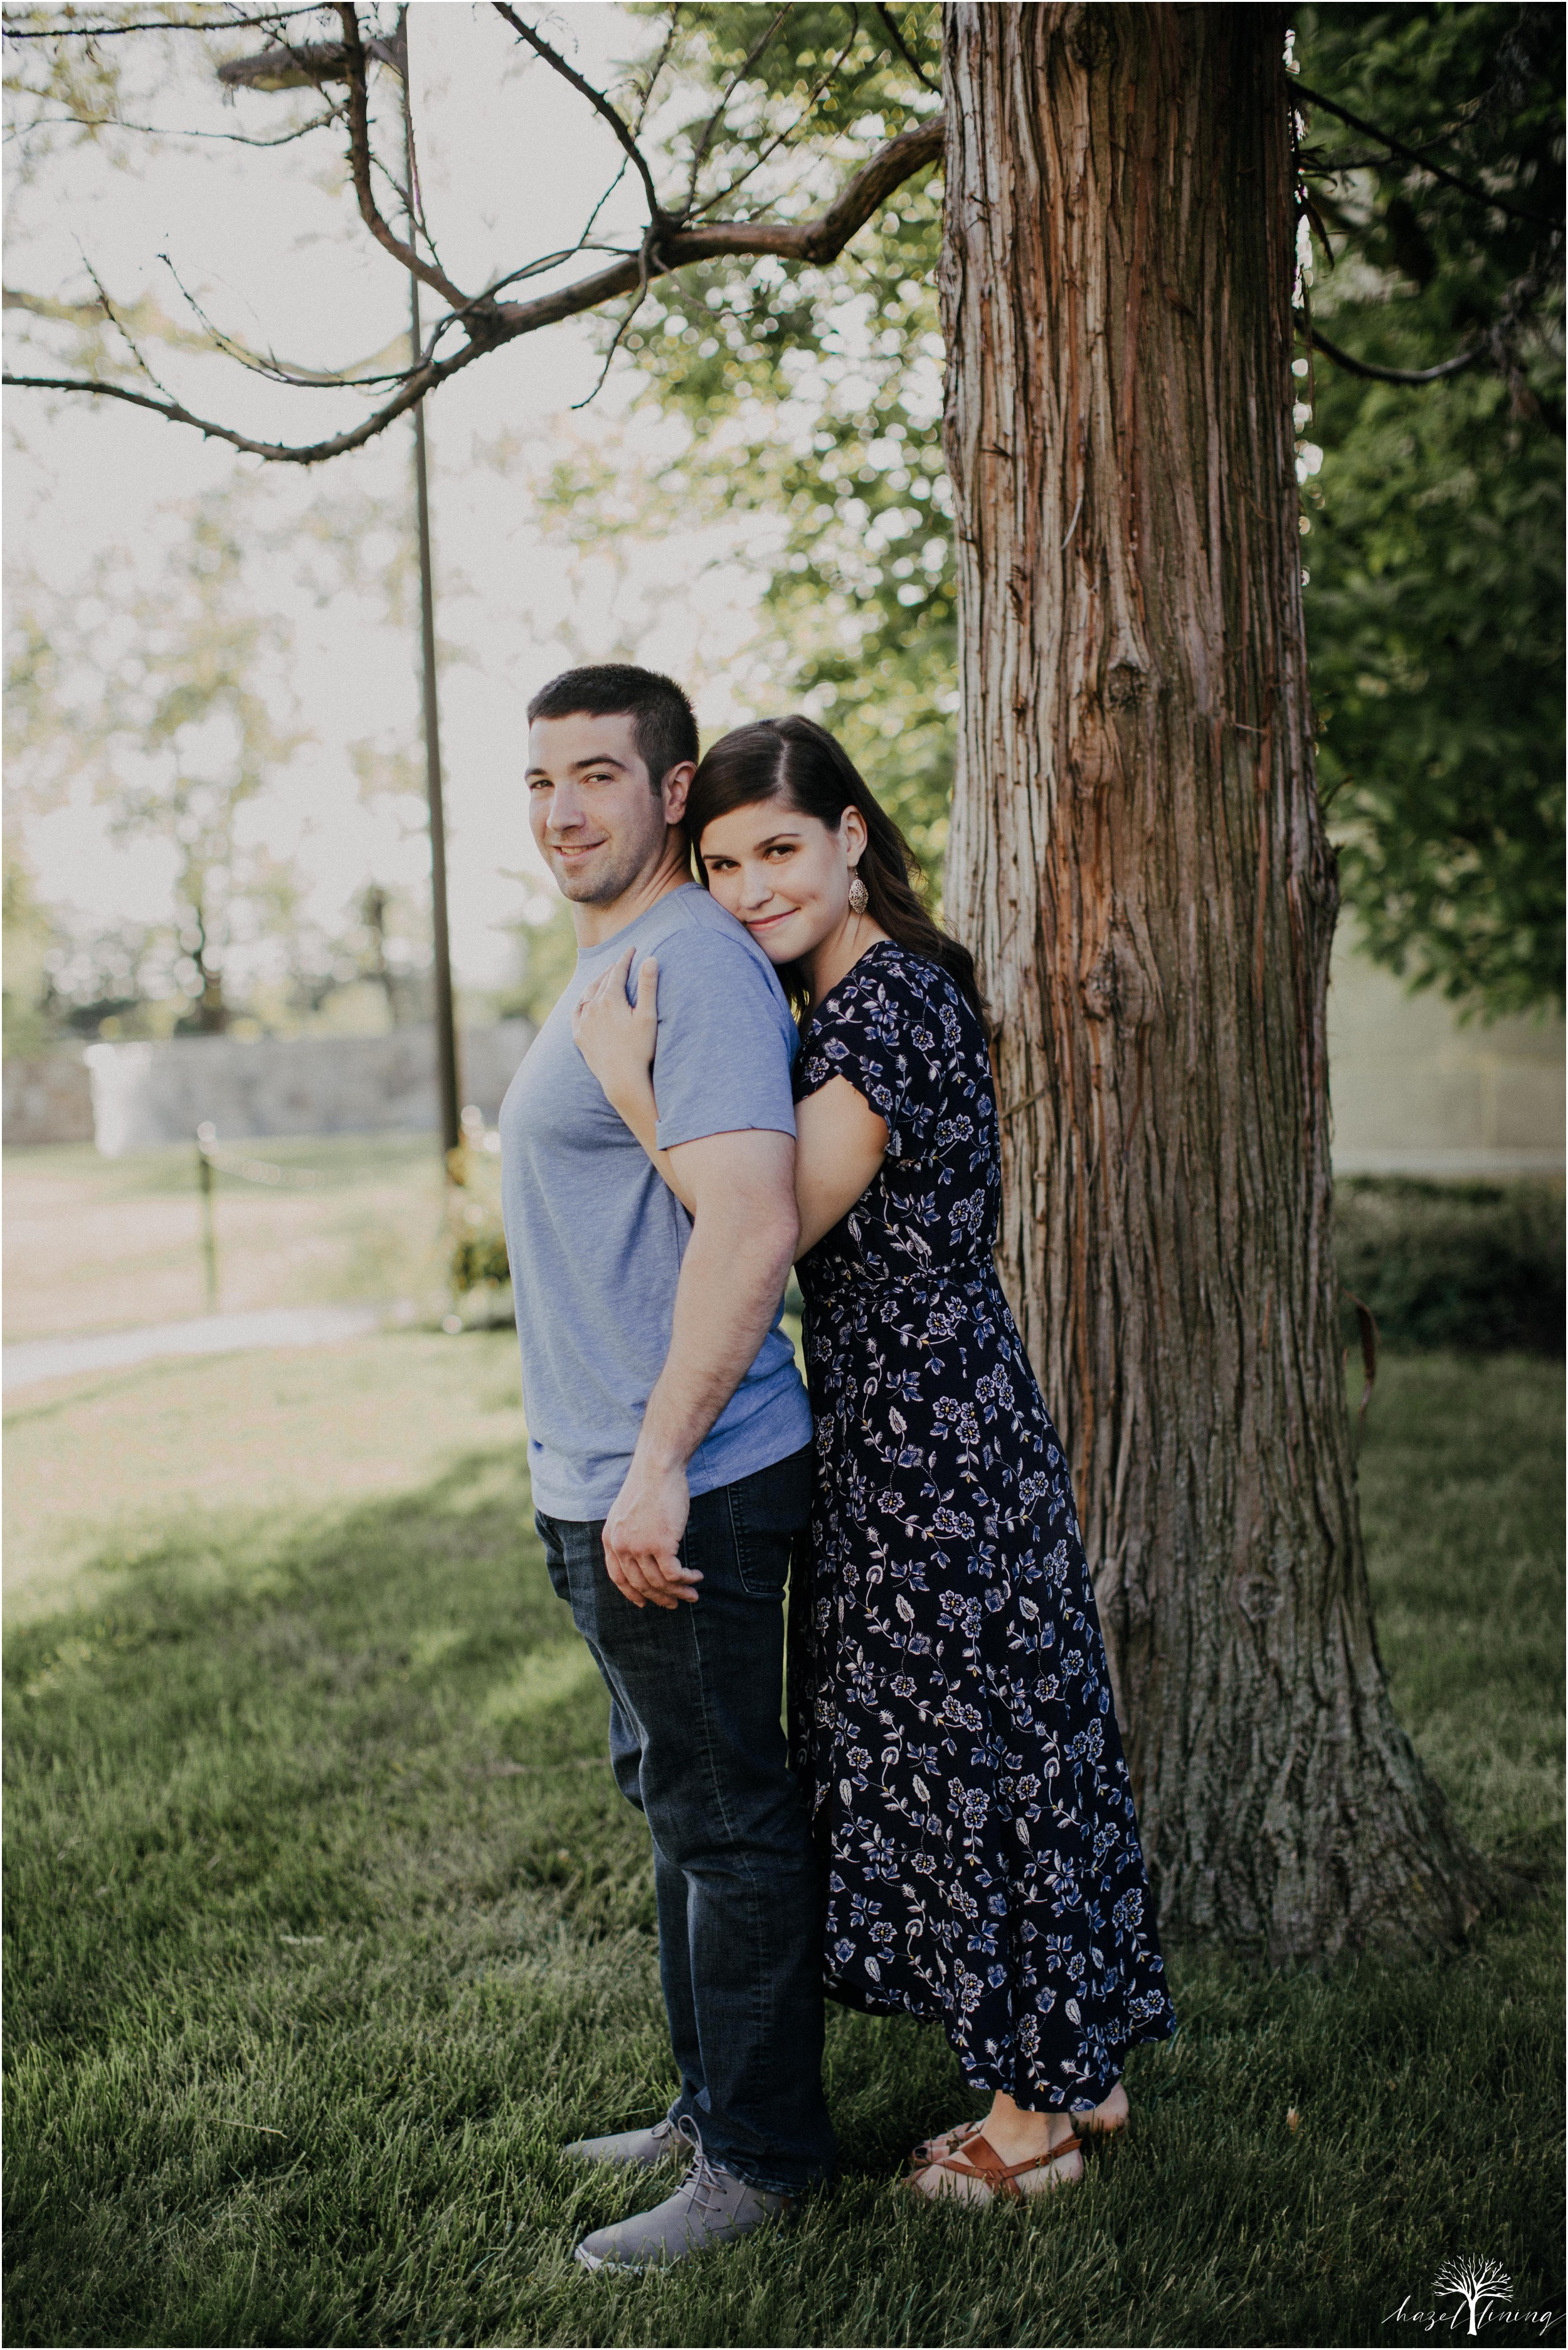 ellyn-jack-kutztown-university-of-pennsylvania-engagement-session-hazel-lining-photography-destination-elopement-wedding-engagement-photography_0226.jpg